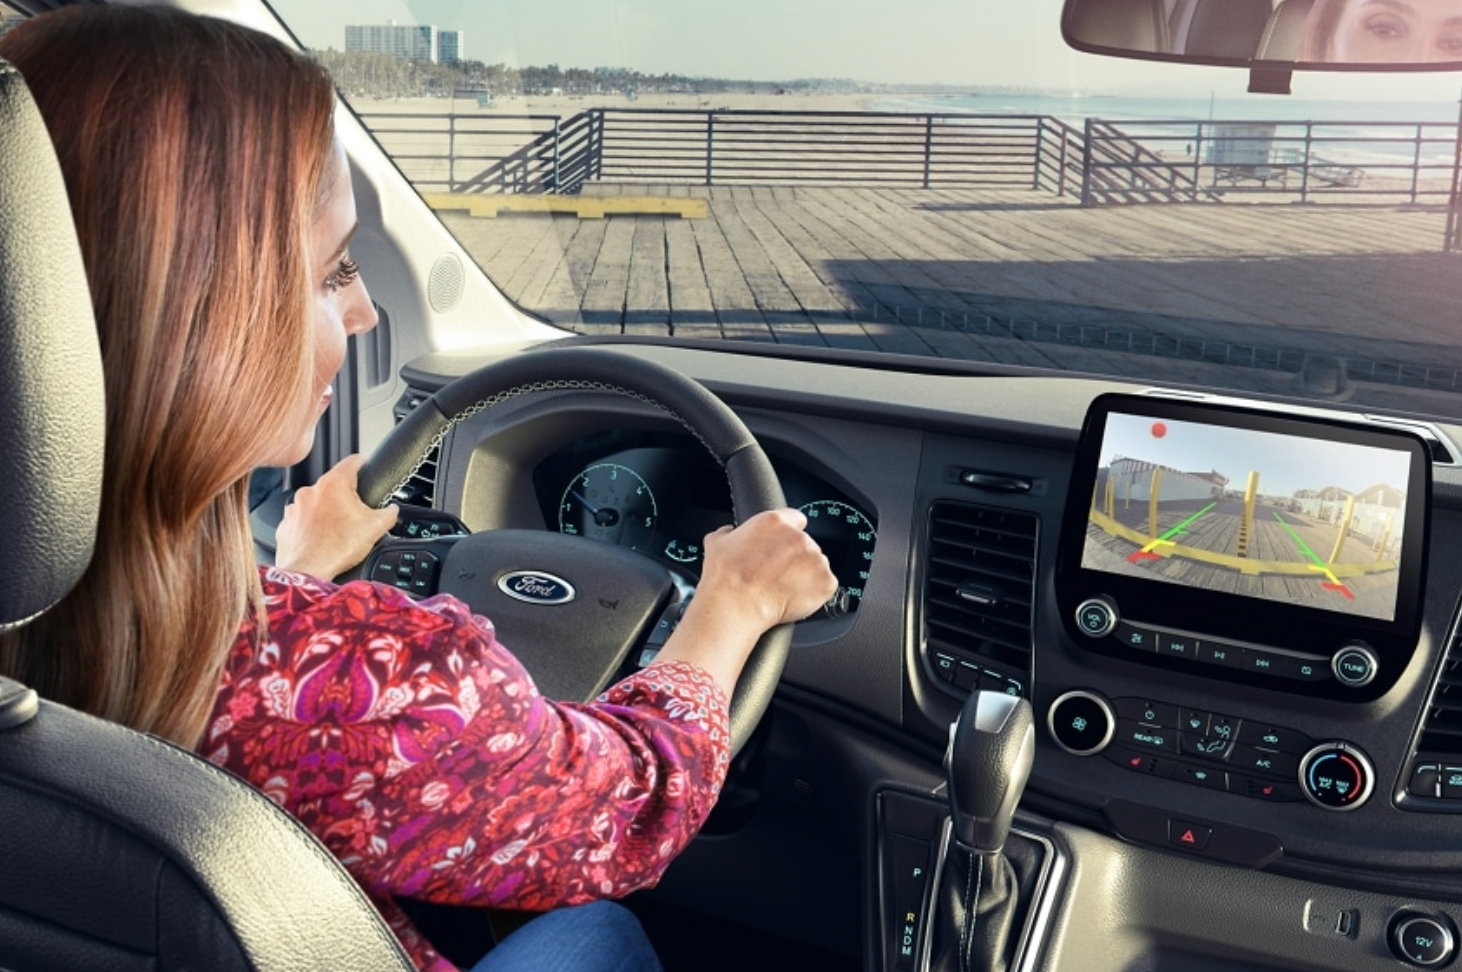 With backup camera, lane control AI, steering wheel advance functions like volume, Apple-play, speed control, GPS, surface drove mode settings.. Ford Transit Custom 2020